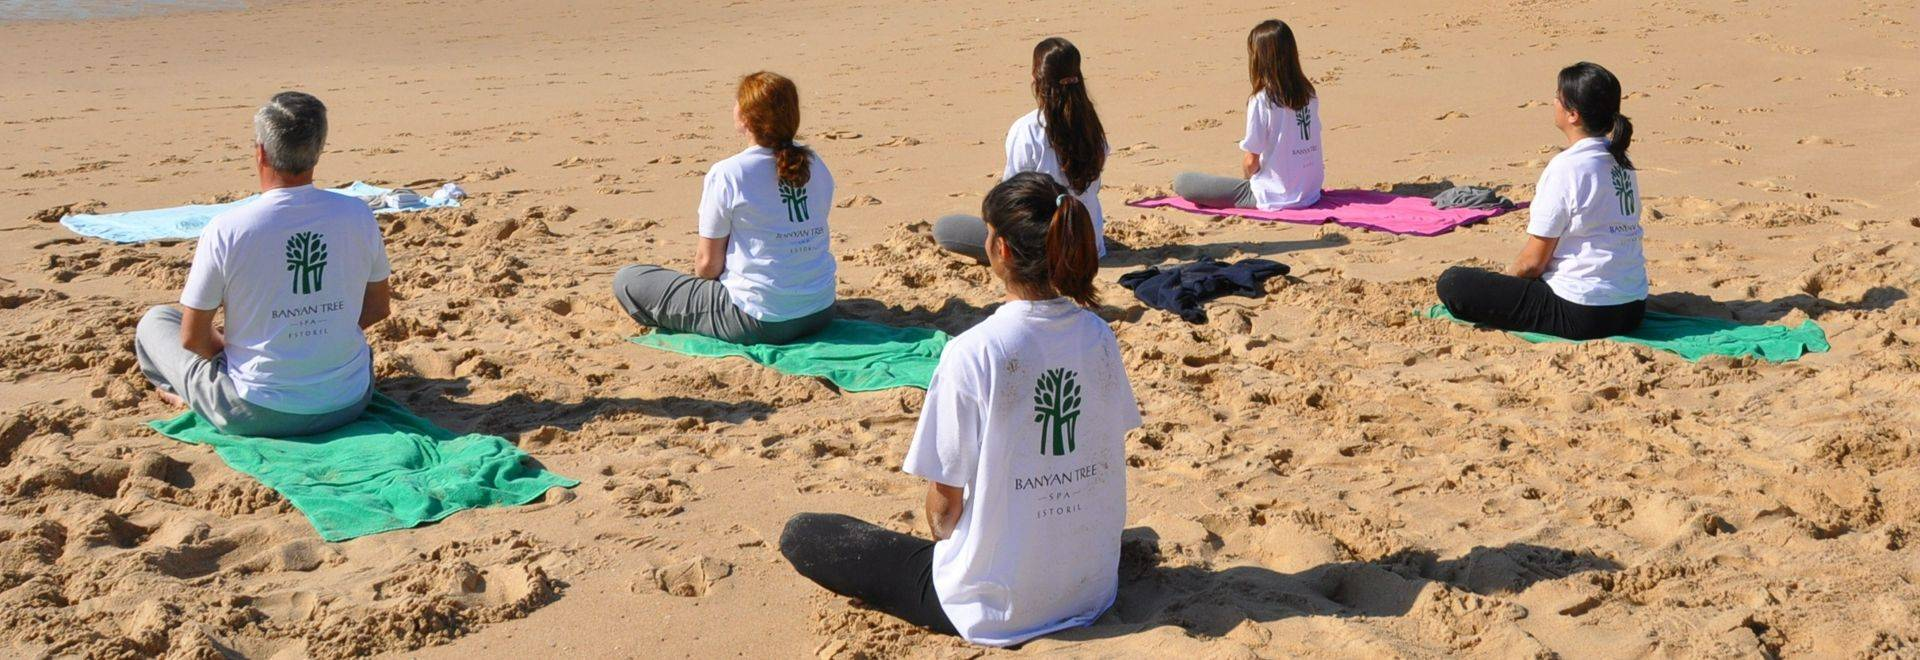 Palacio-Estoril-yoga-class-beach.JPG